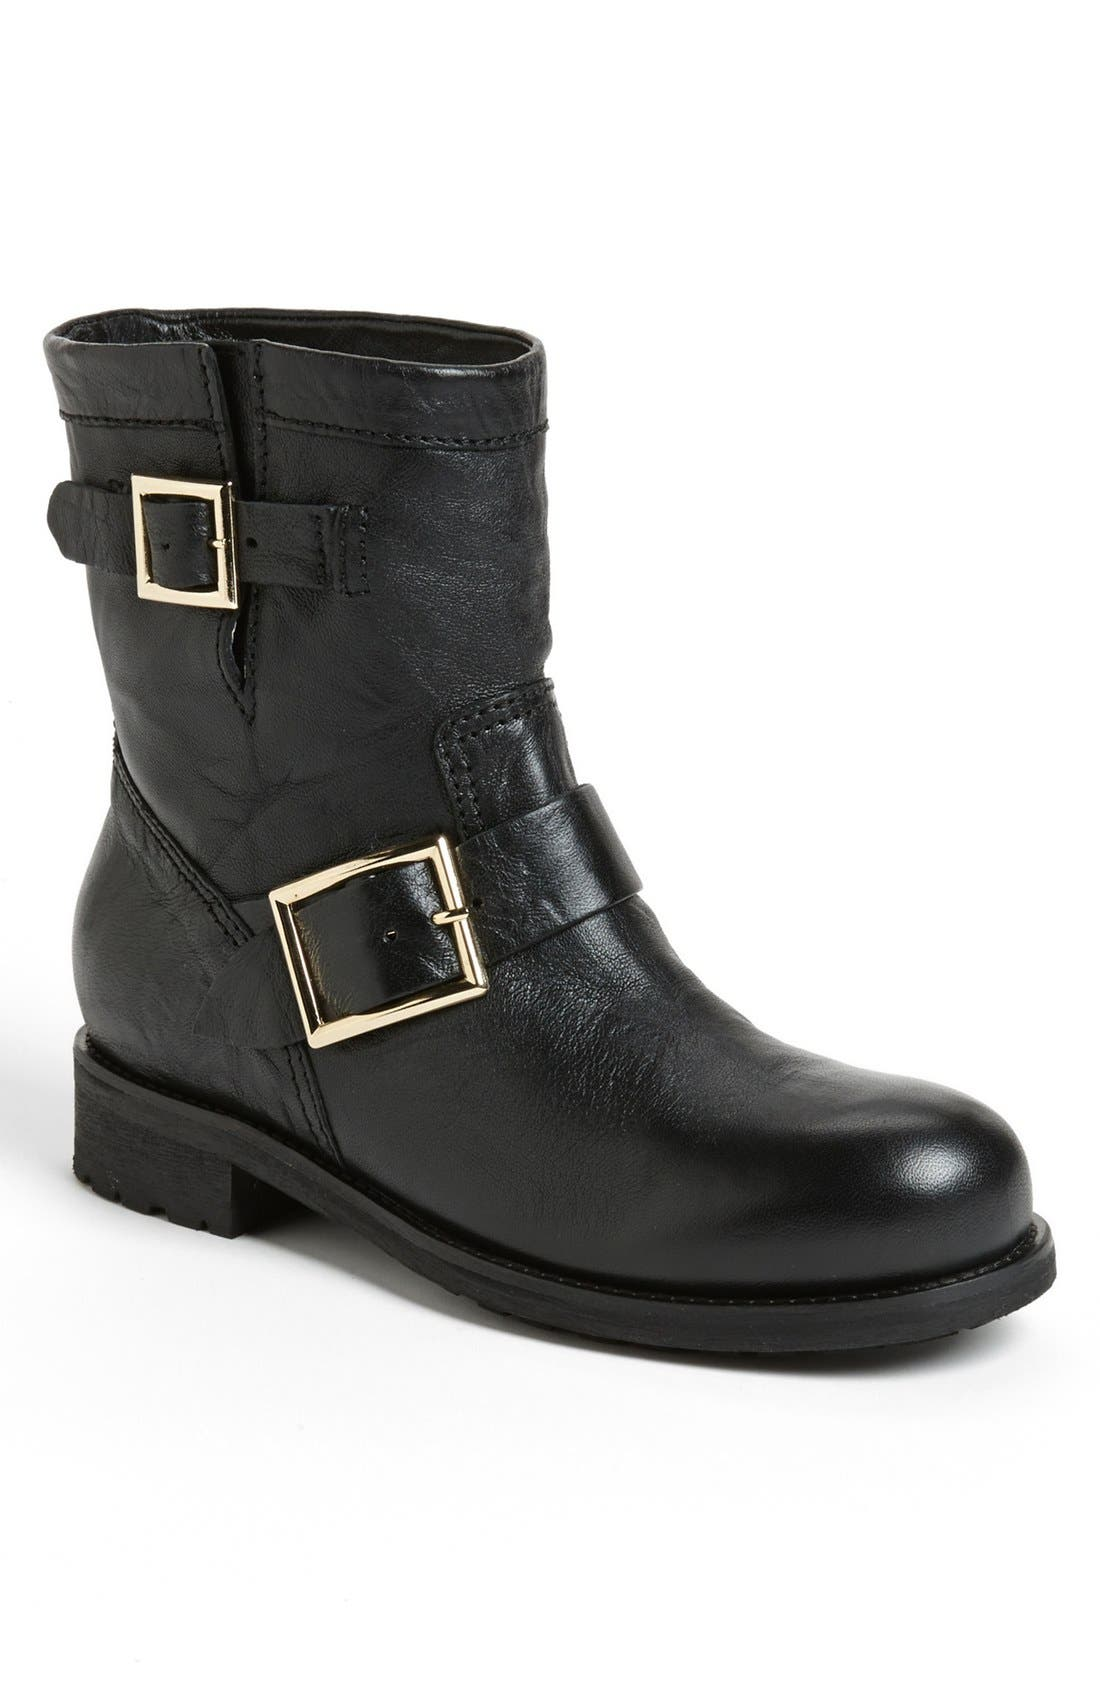 Alternate Image 1 Selected - Jimmy Choo 'Youth' Short Biker Boot